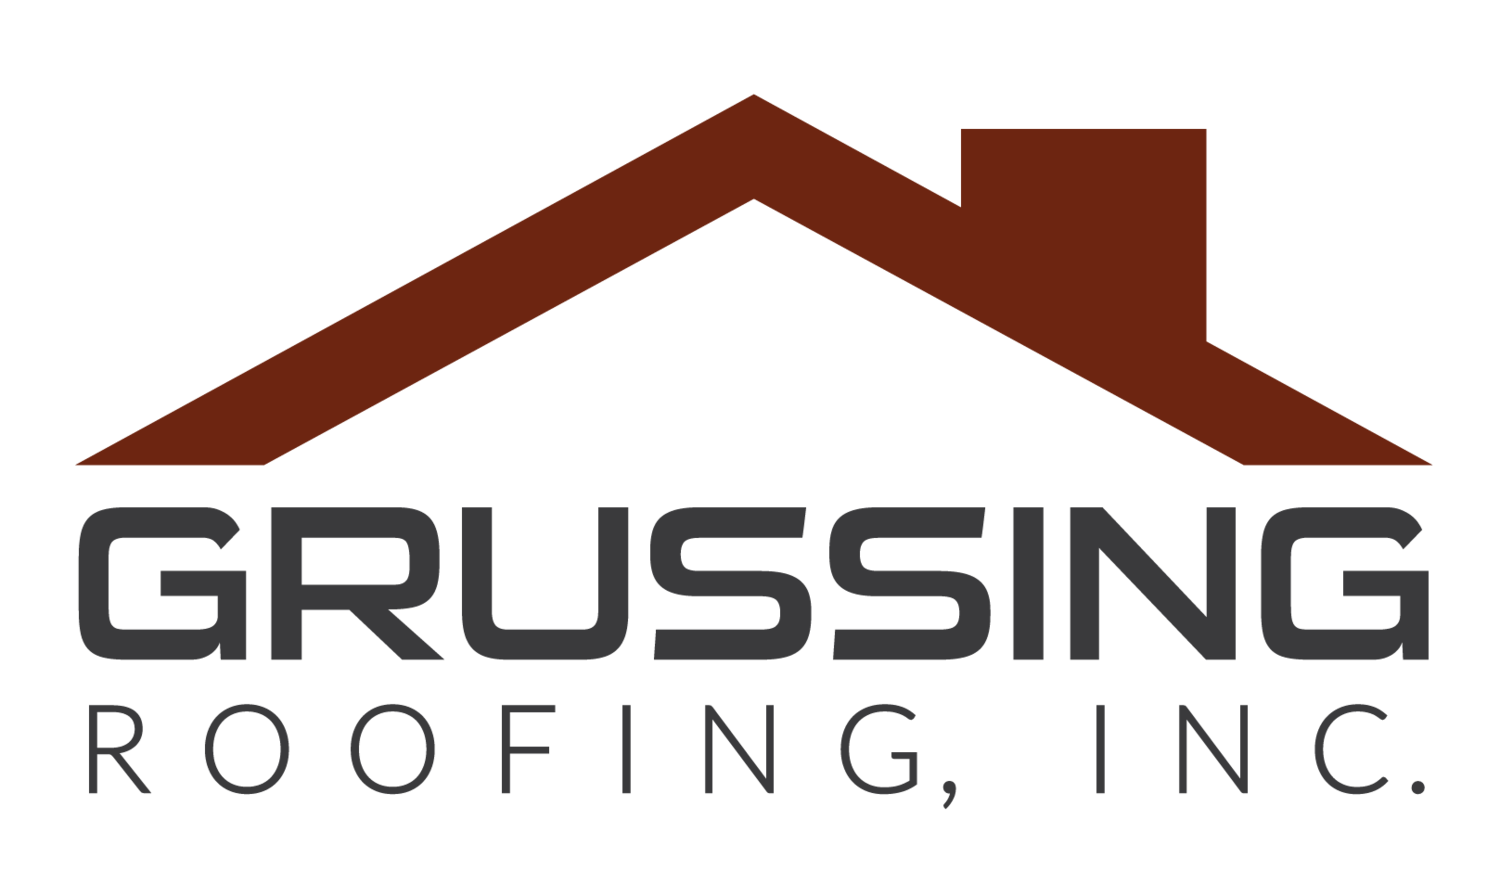 Grussing Roofing, Inc.